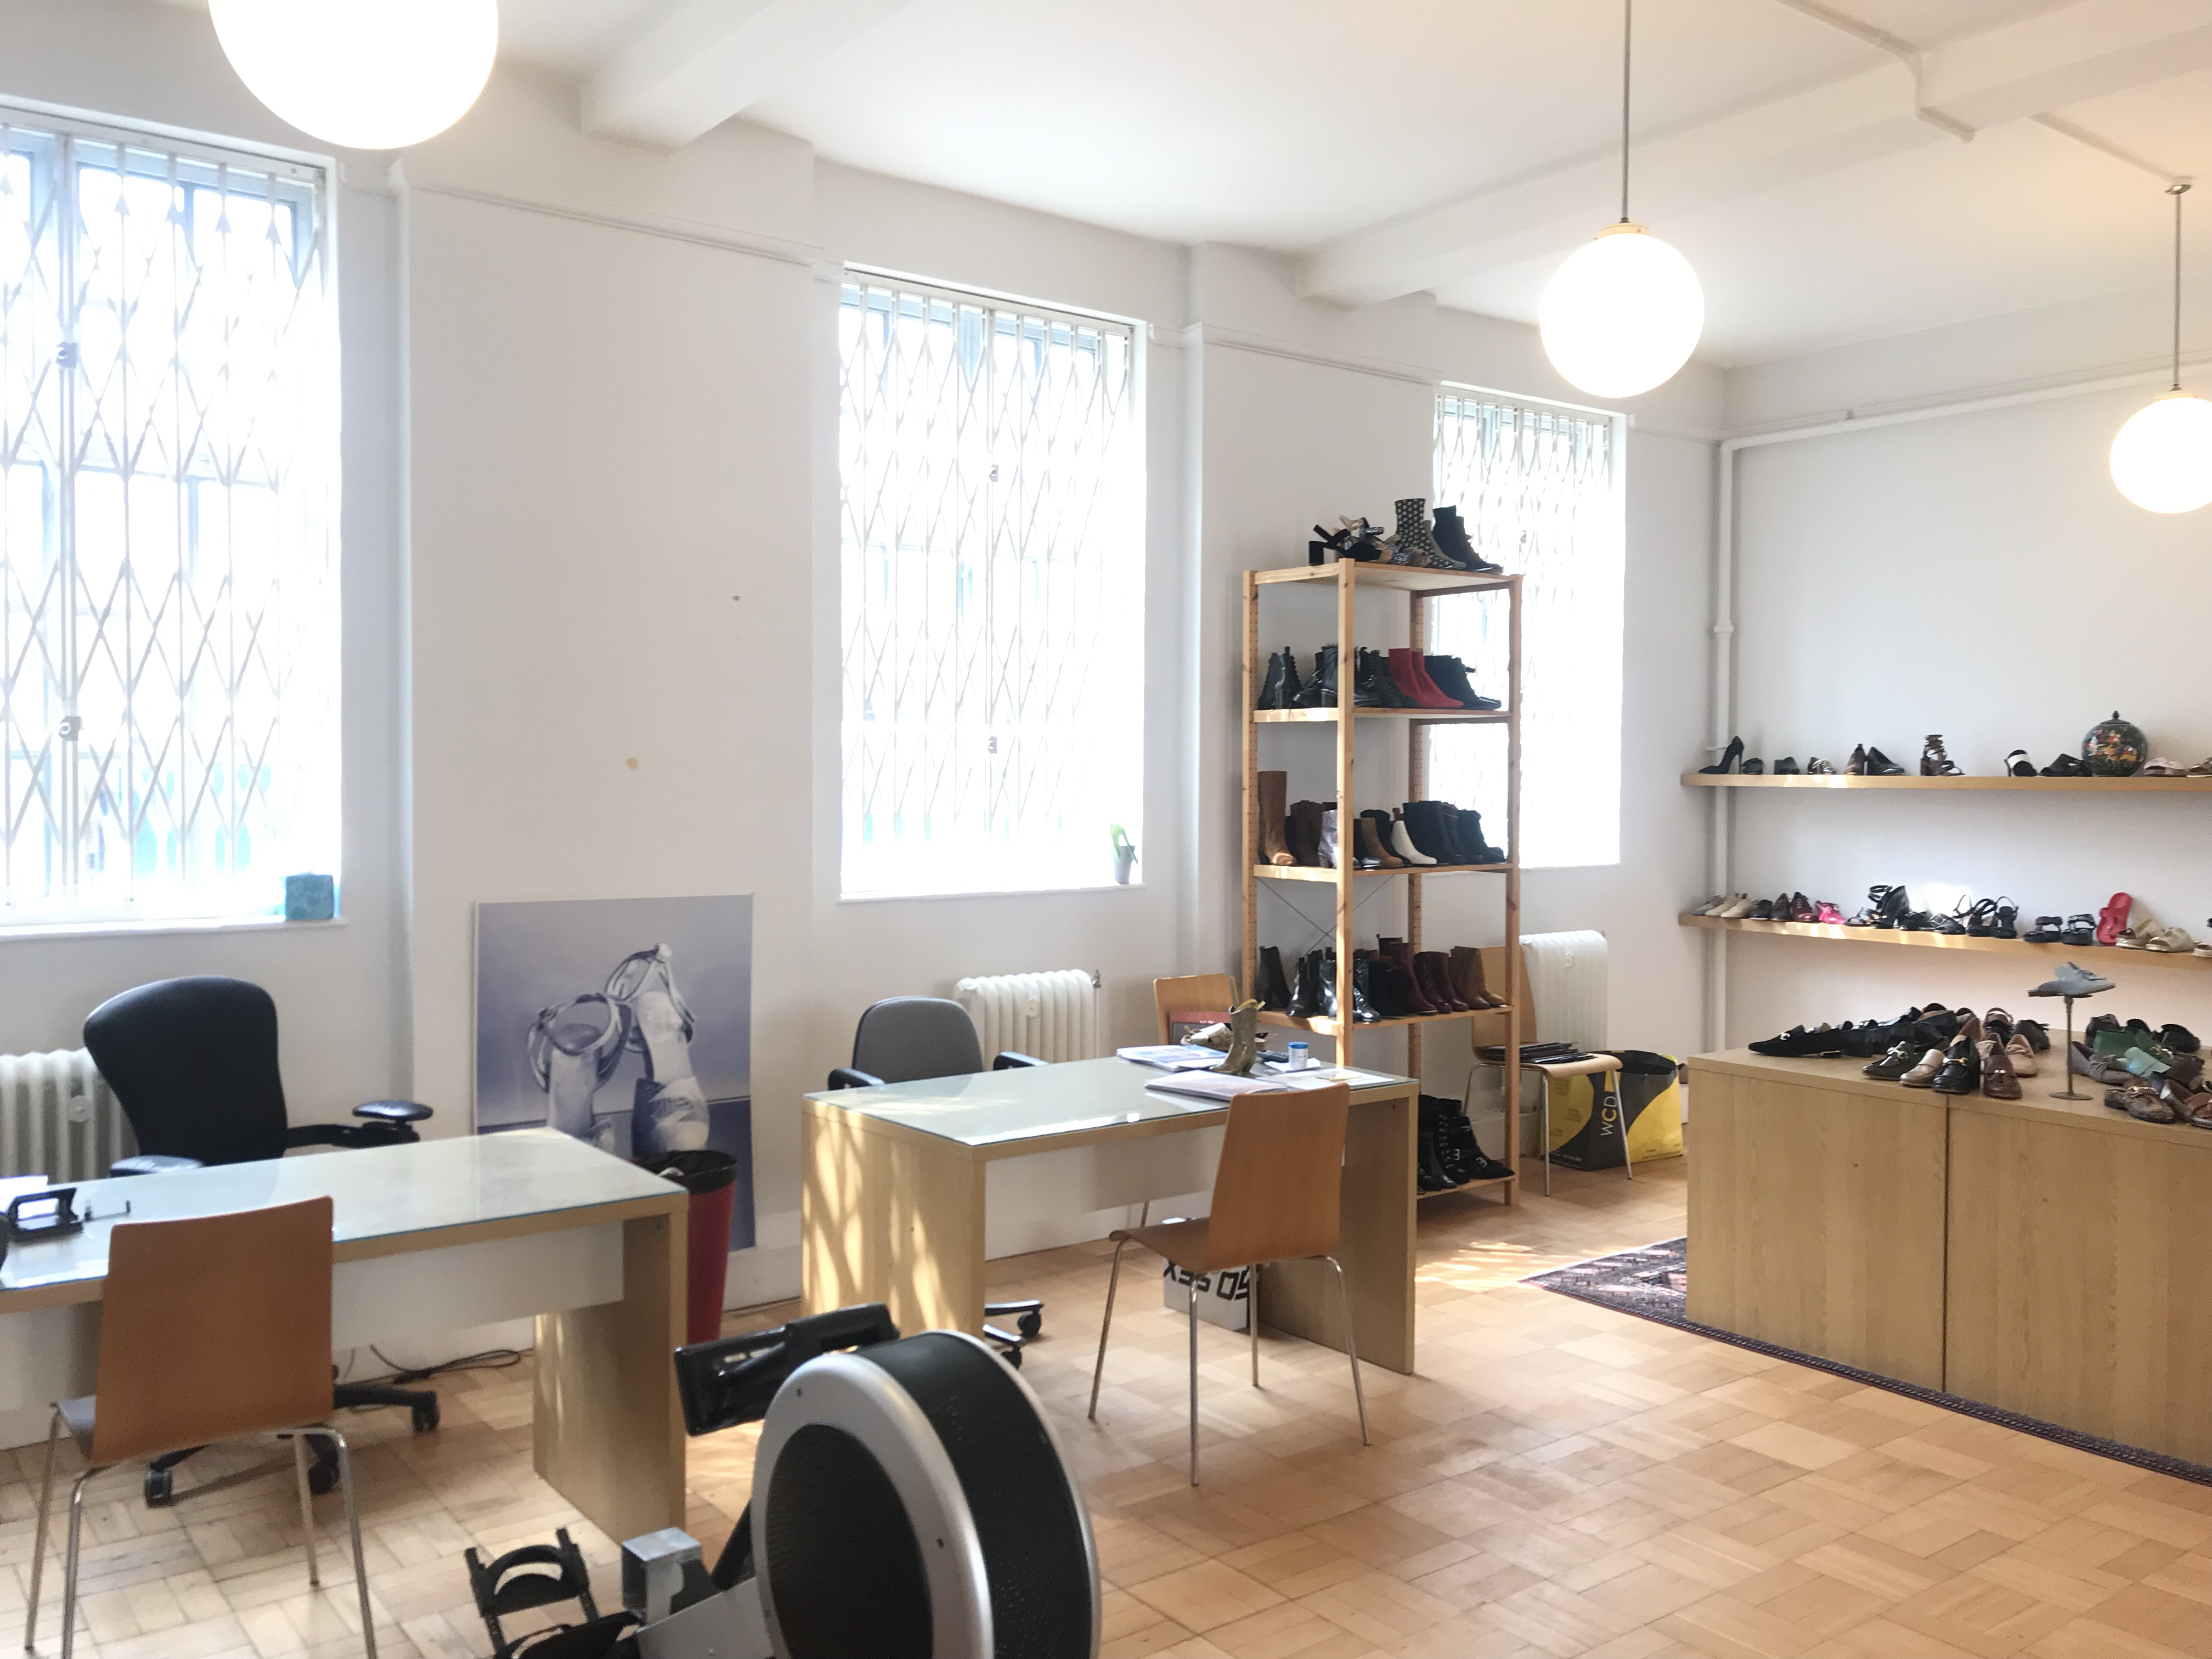 930 SQ FT OFFICES TO LET, 31 OVAL ROAD, CAMDEN NW1 7DH